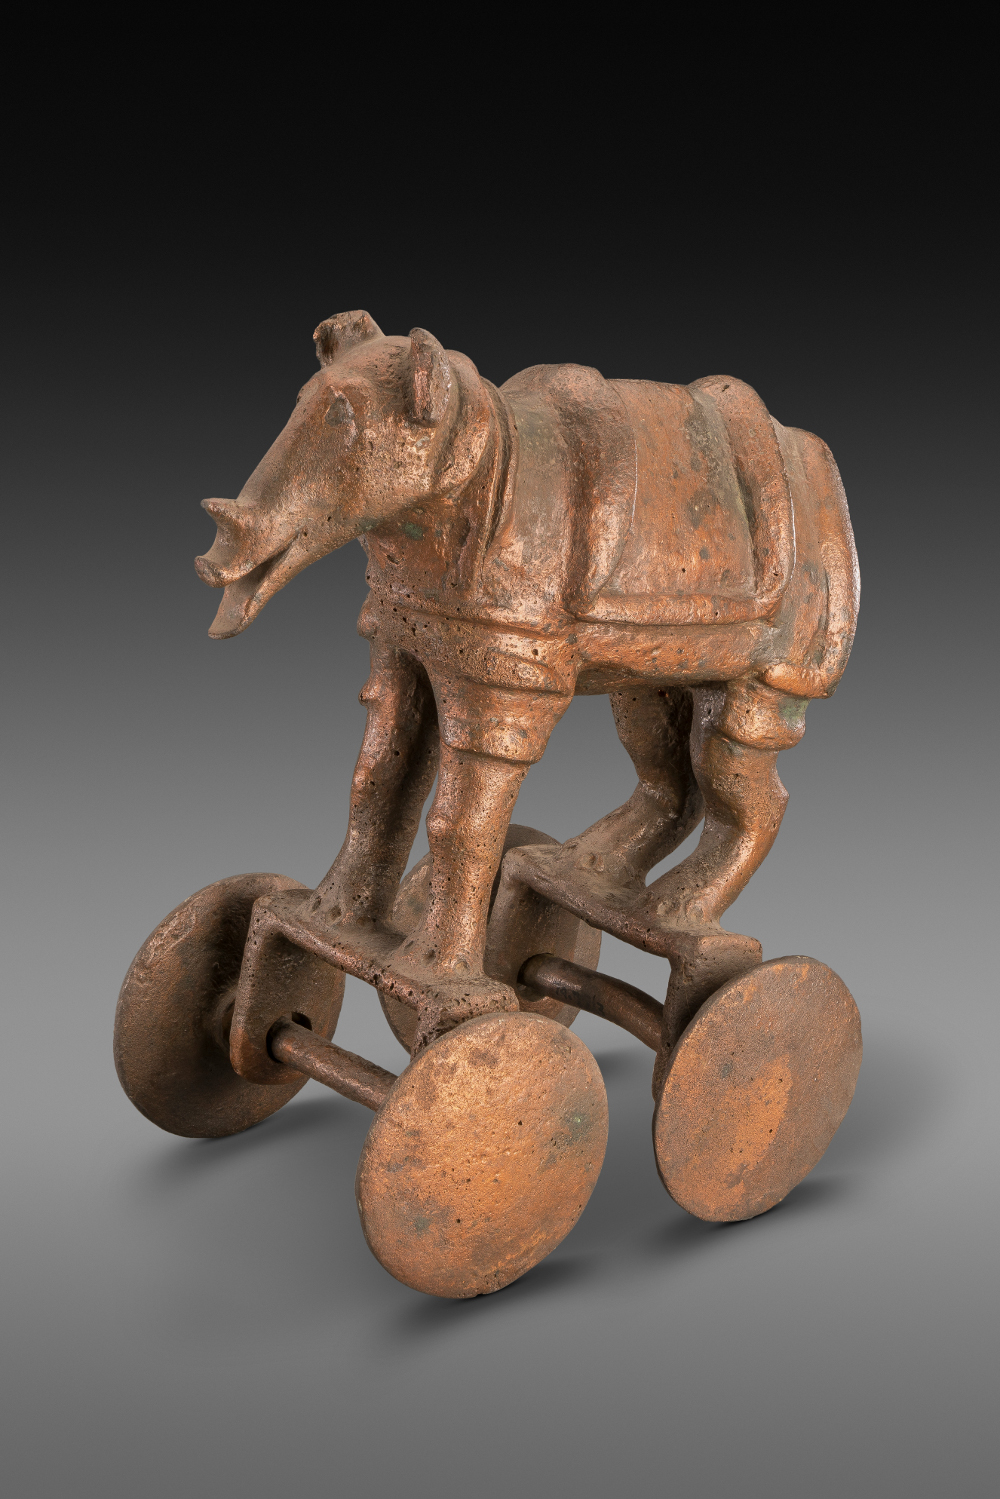 Rhinoceros - Bronze1500–1050 BCDaimabad, Maharashtra, IndiaNational Museum, New Delhi                       This copper cart is one of a set of four, the others are modelled into an elephant, buffalo and a chariot drawn by two bullocks. These carts are too small to be visible to the public in a procession and too heavy to be used as toys. They are most likely expensive grave goods or ceremonial replicas. This rhinoceros bears some similarities with depictions on Harappan seals. Yet no major Harappan-style cities have been found in Maharashtra.